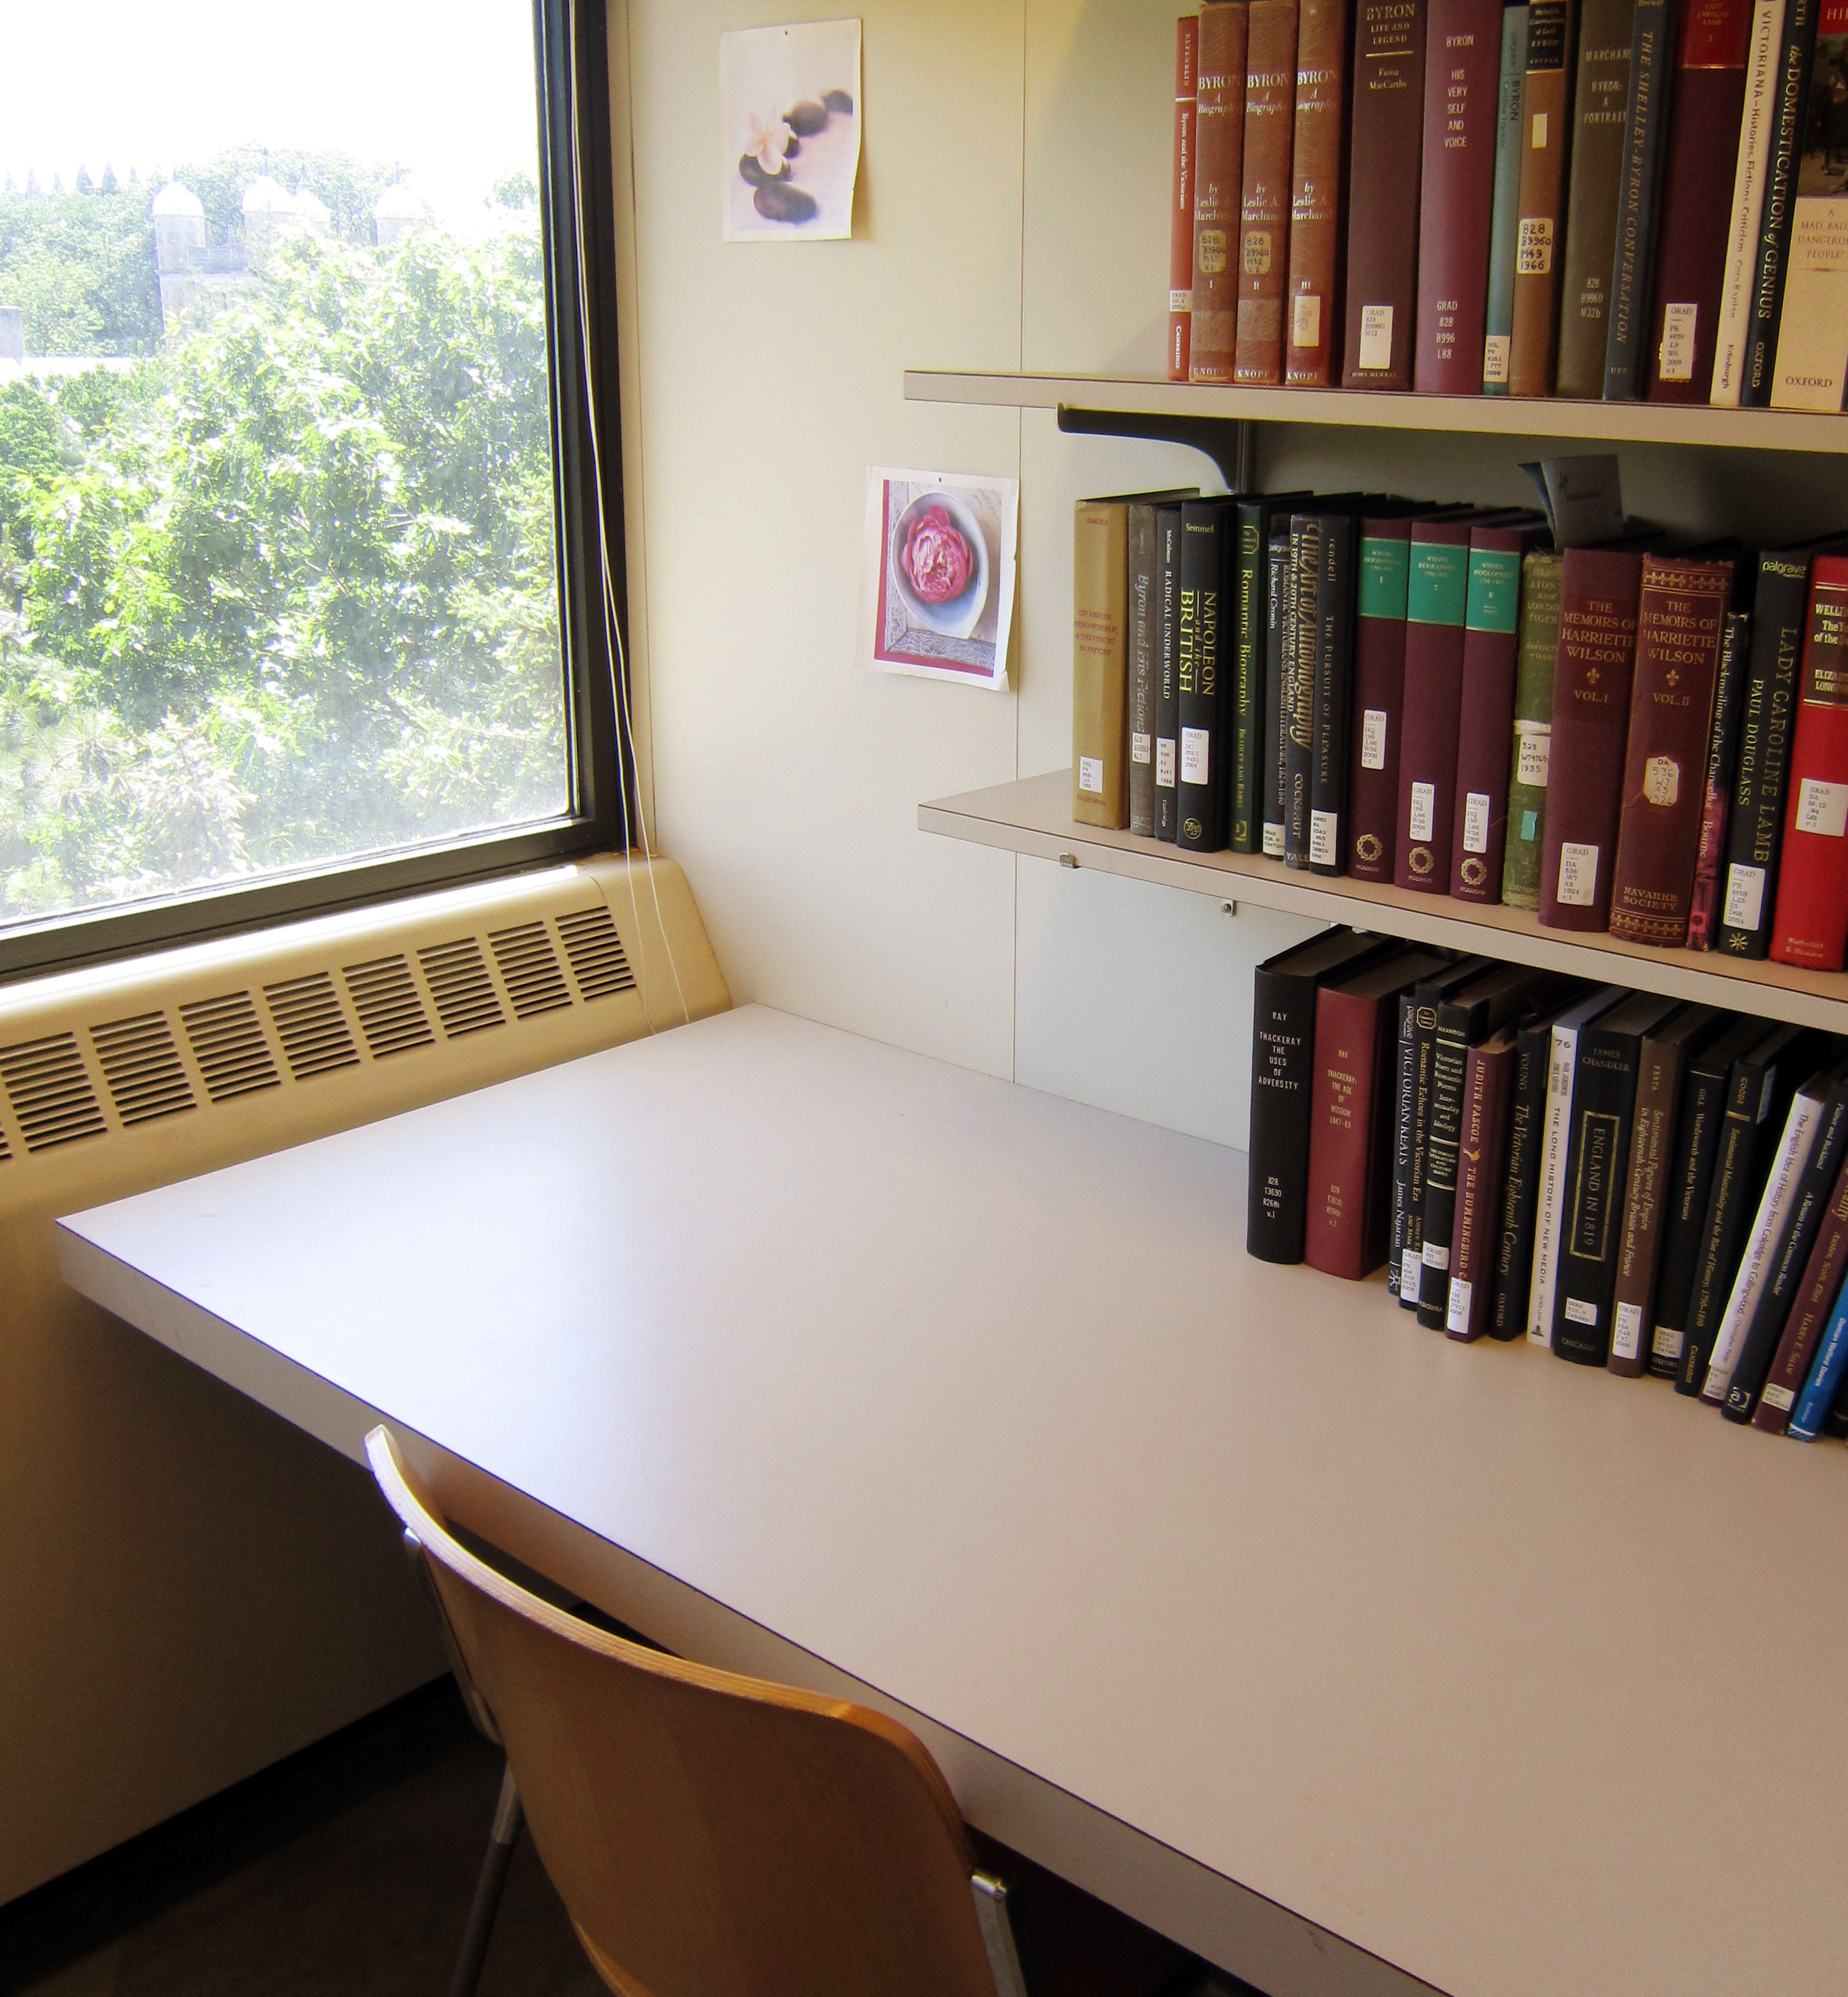 Hatcher carrel desk with chair and bookshelves